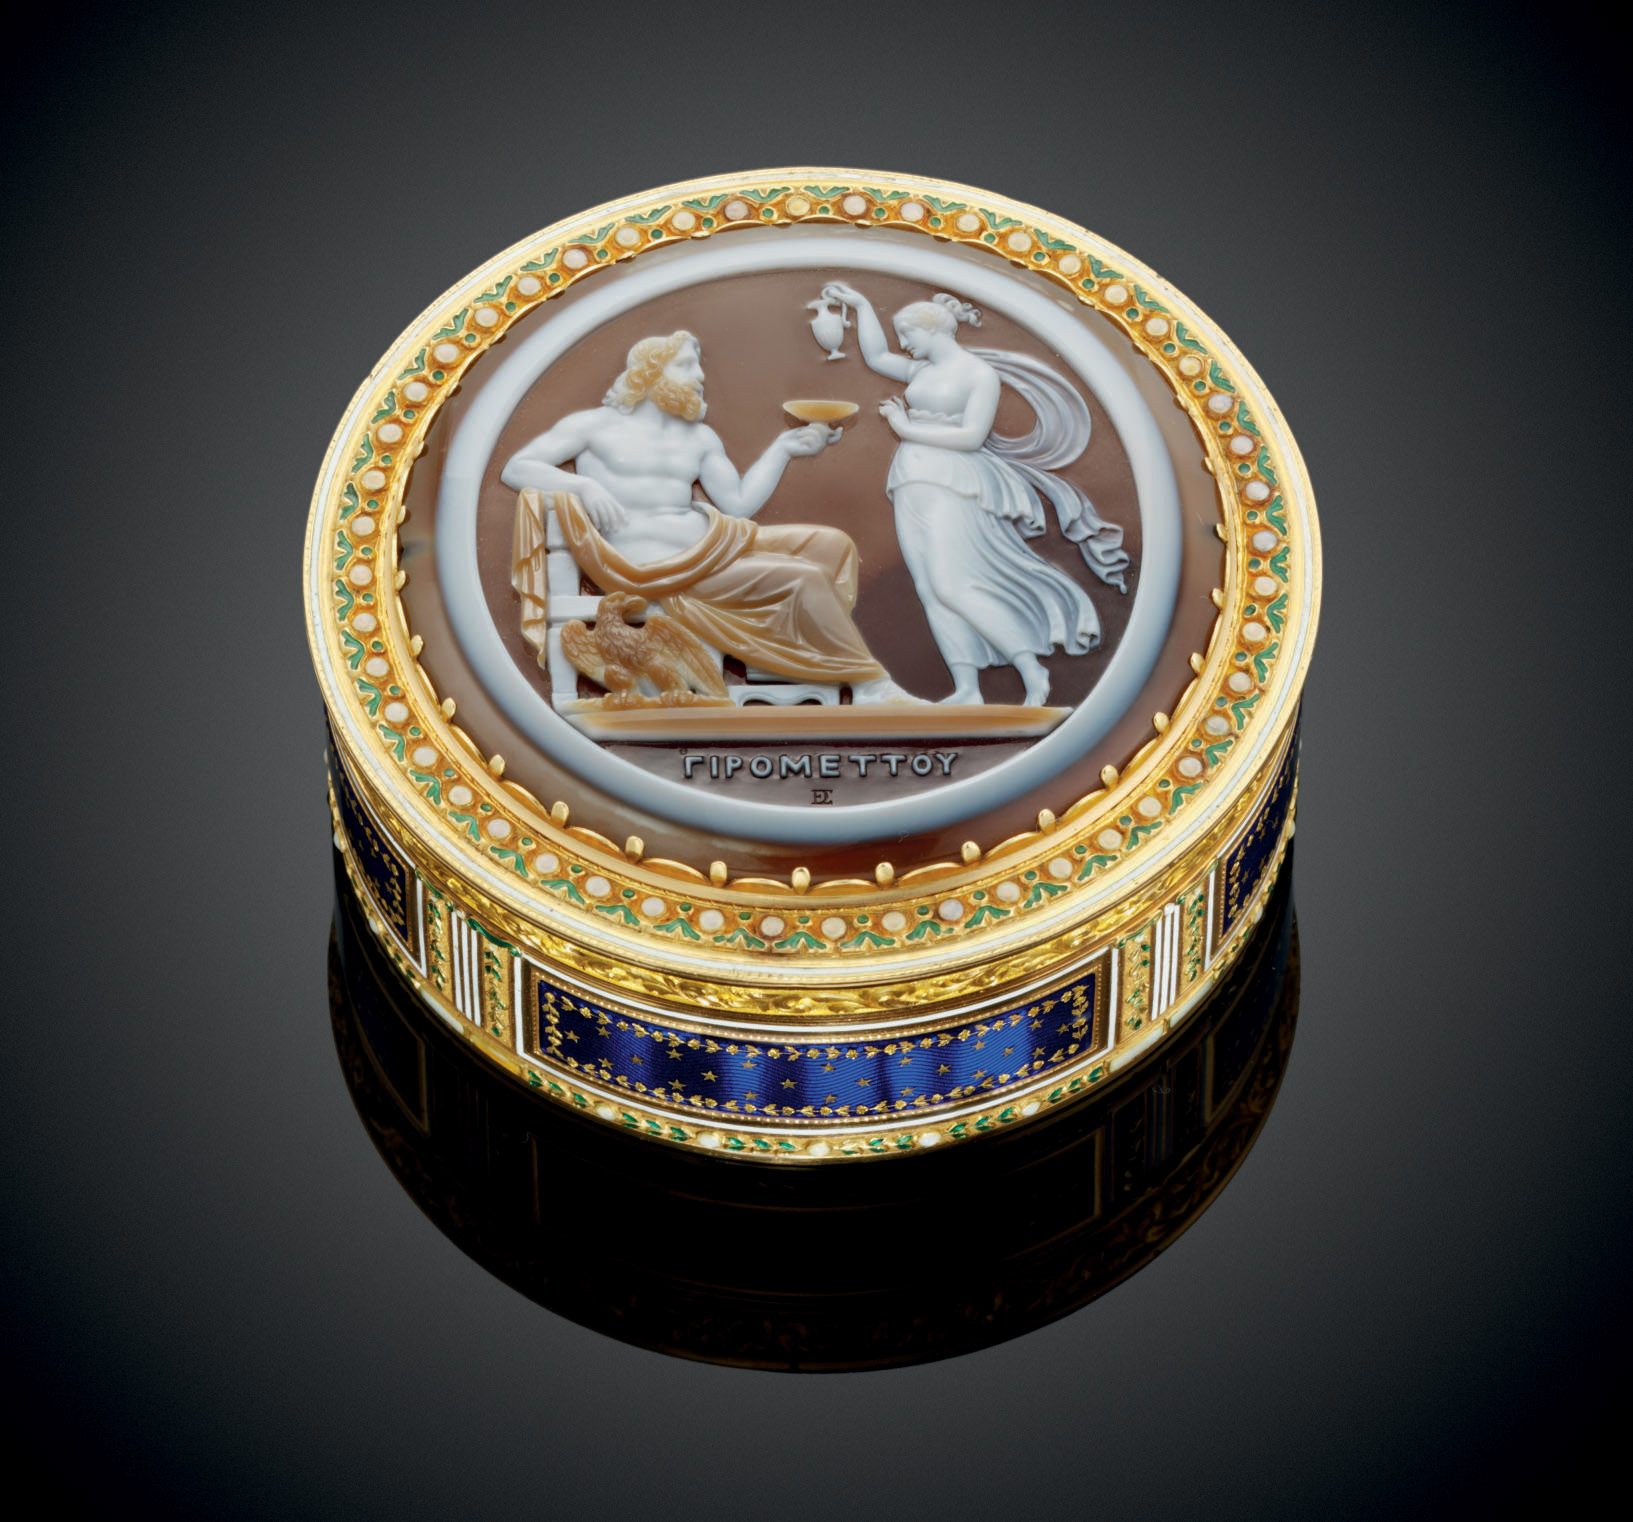 A LOUIS XVI ENAMELLED GOLD BONBONNIÈRE SET WITH A CAMEO